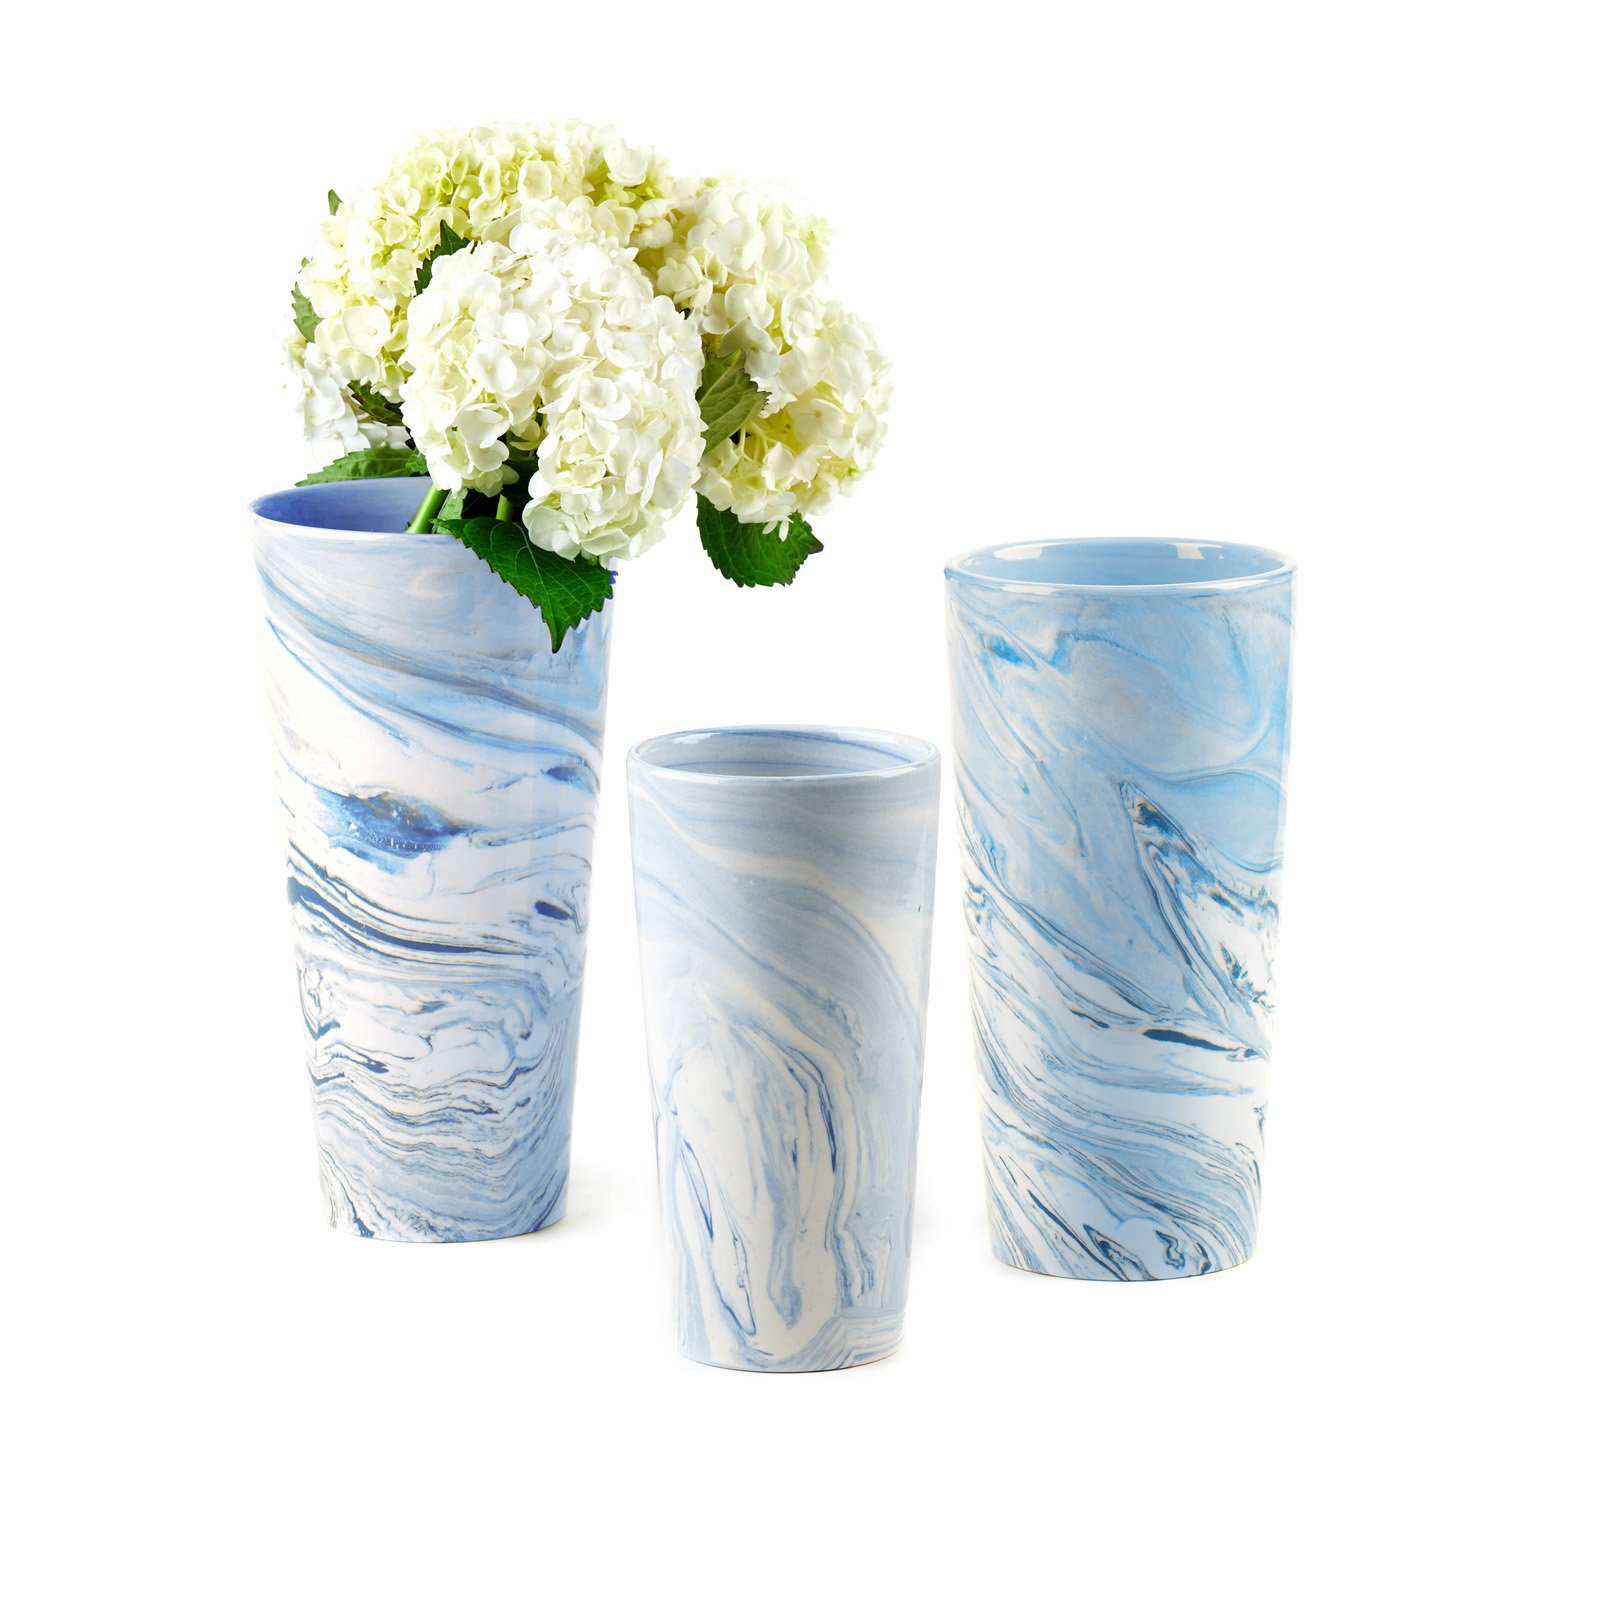 Passport Collection Terre Melee Tall Vase - Set of 3